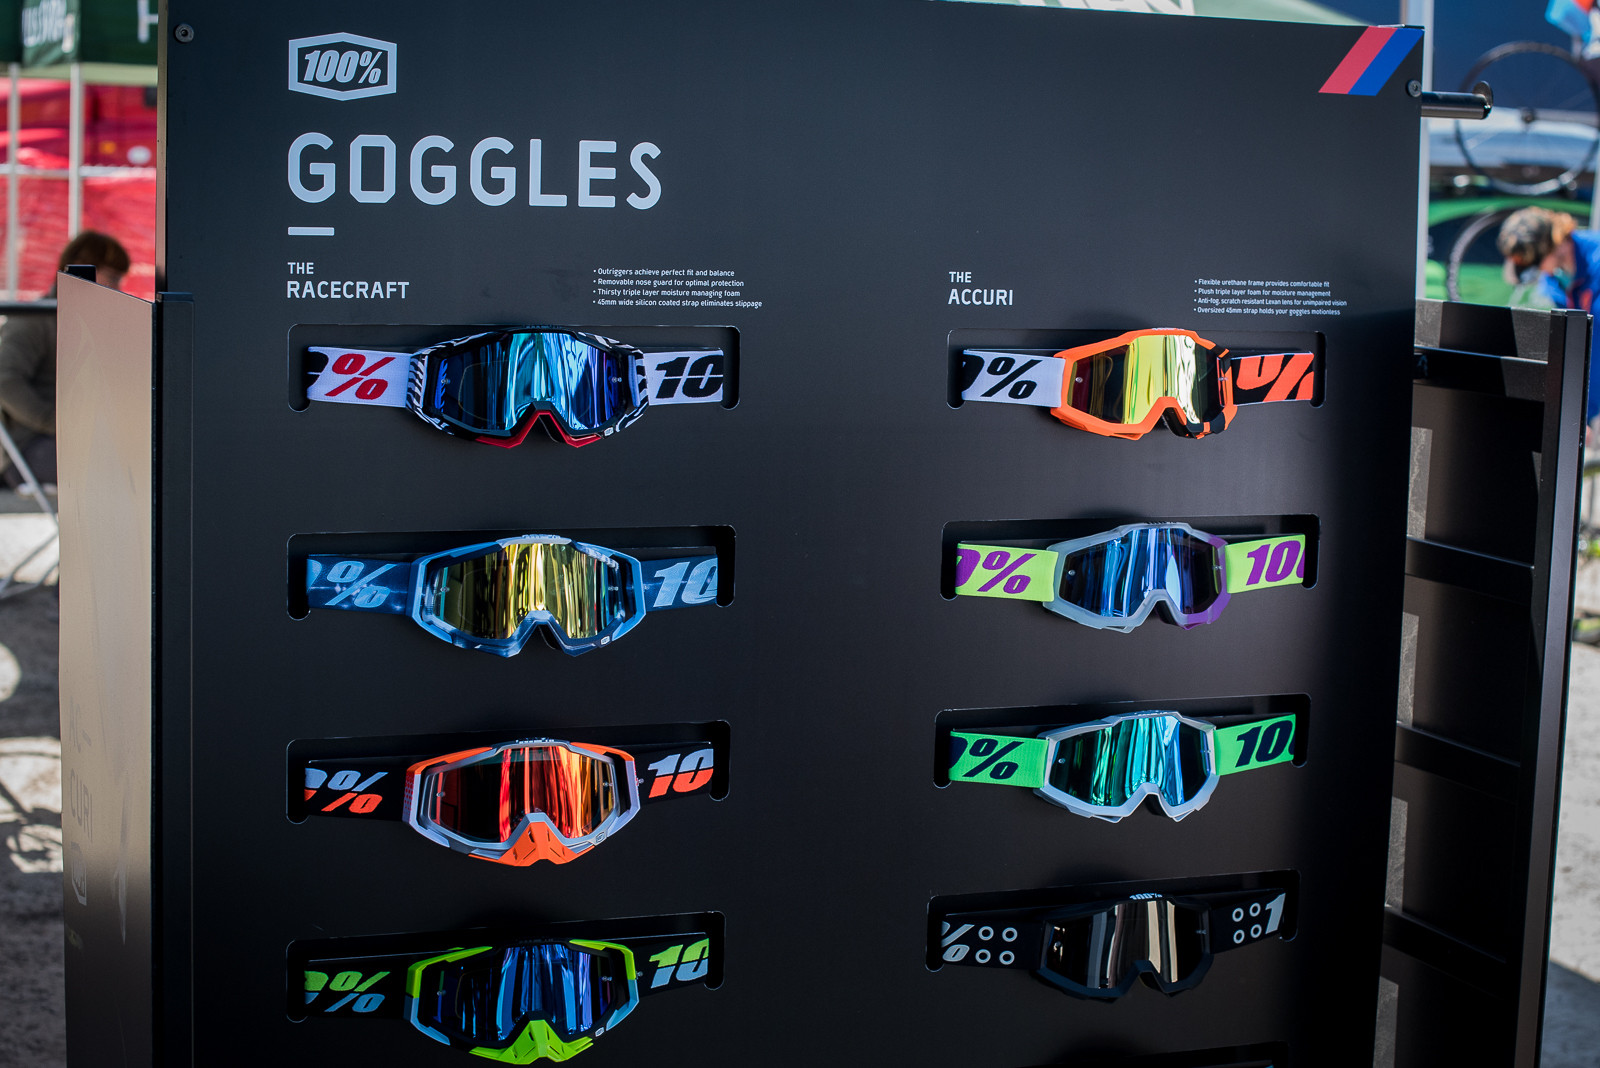 100% 2016 Goggle Colorways - 2016 Sea Otter Classic Pit Bits - Mountain Biking Pictures - Vital MTB